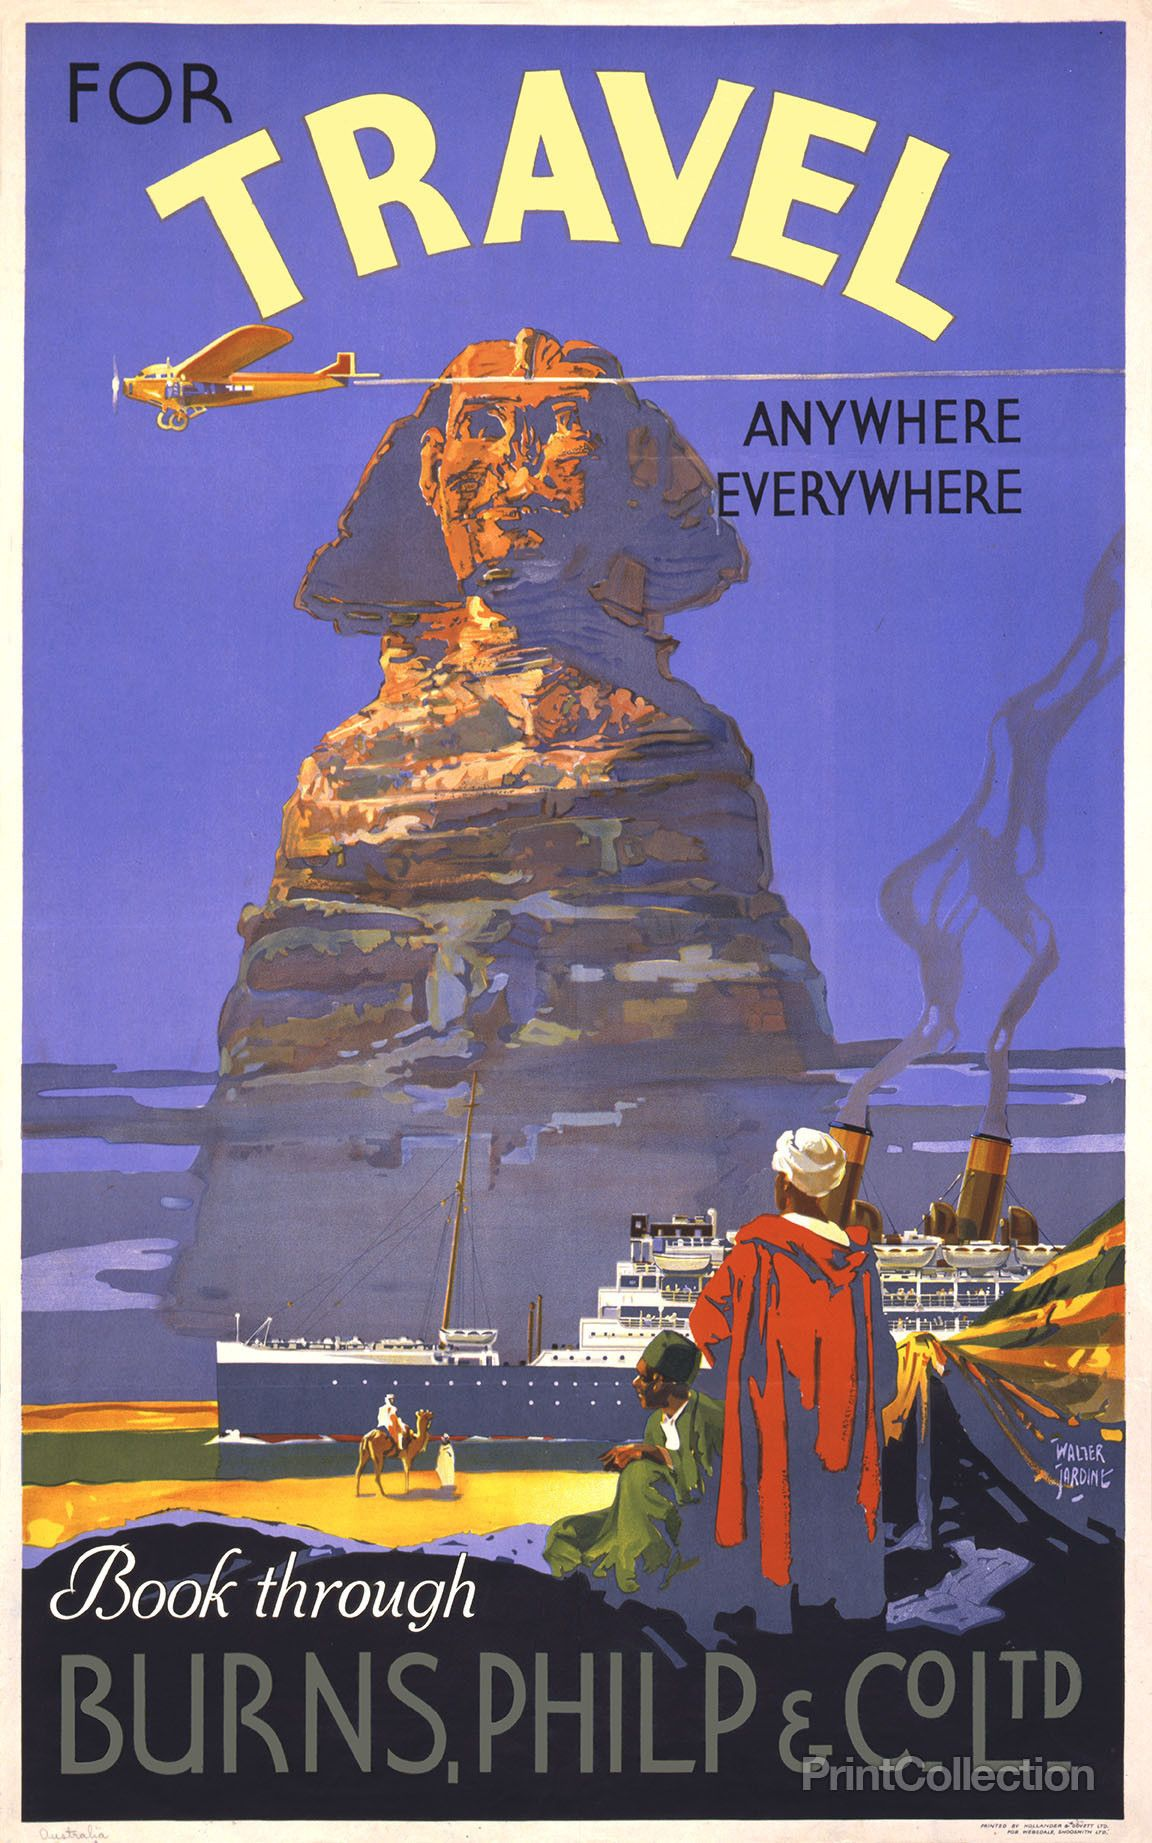 16x24 1940s Egyptian Pyramid Ruins Vintage Style Travel Poster